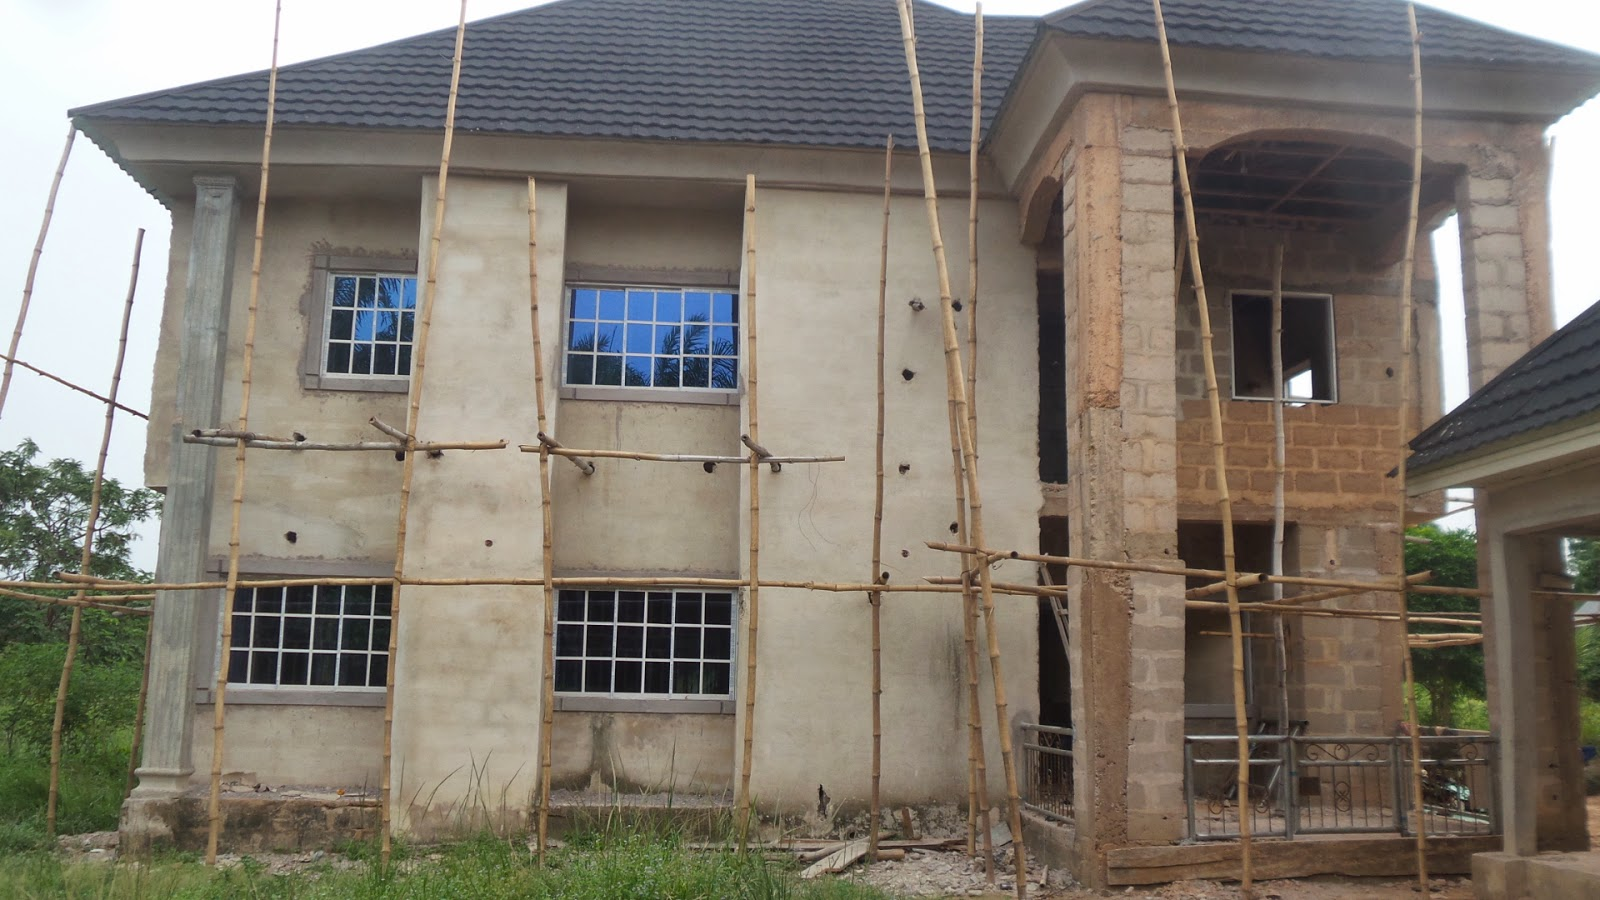 Updates from our ebonyi state duplex building